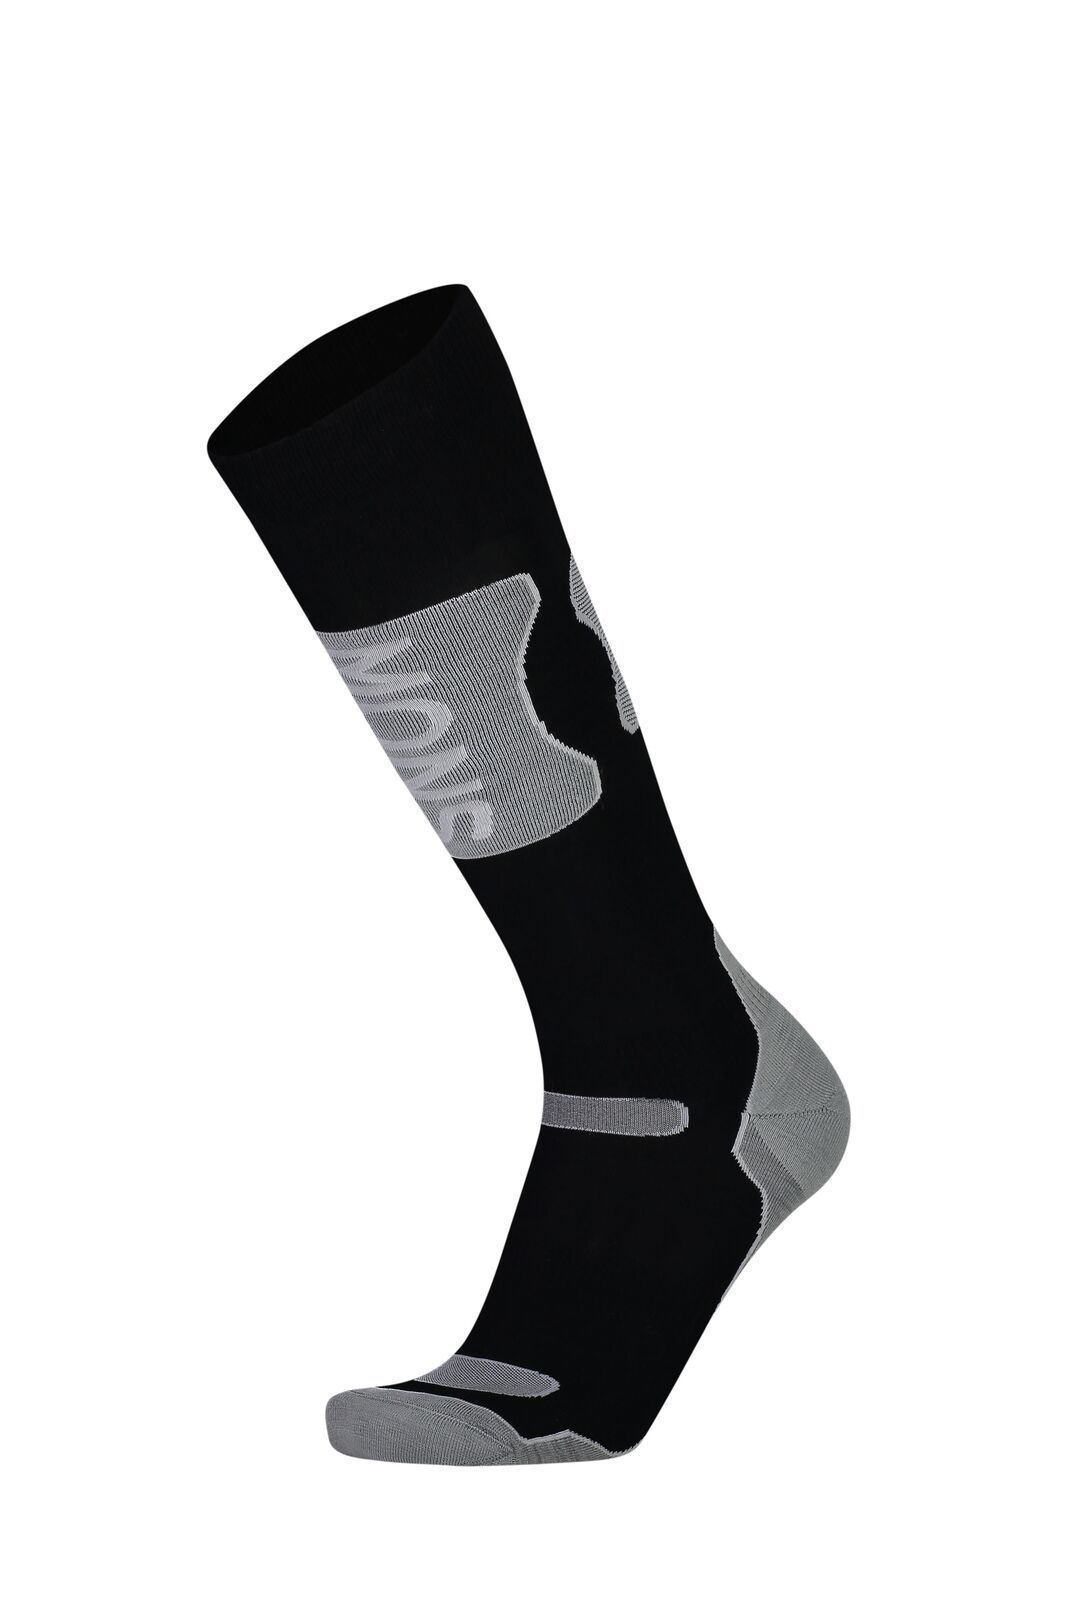 Mons Royale - Men's Pro Lite Tech Sock - Merino Wool - Weekendbee - sustainable sportswear